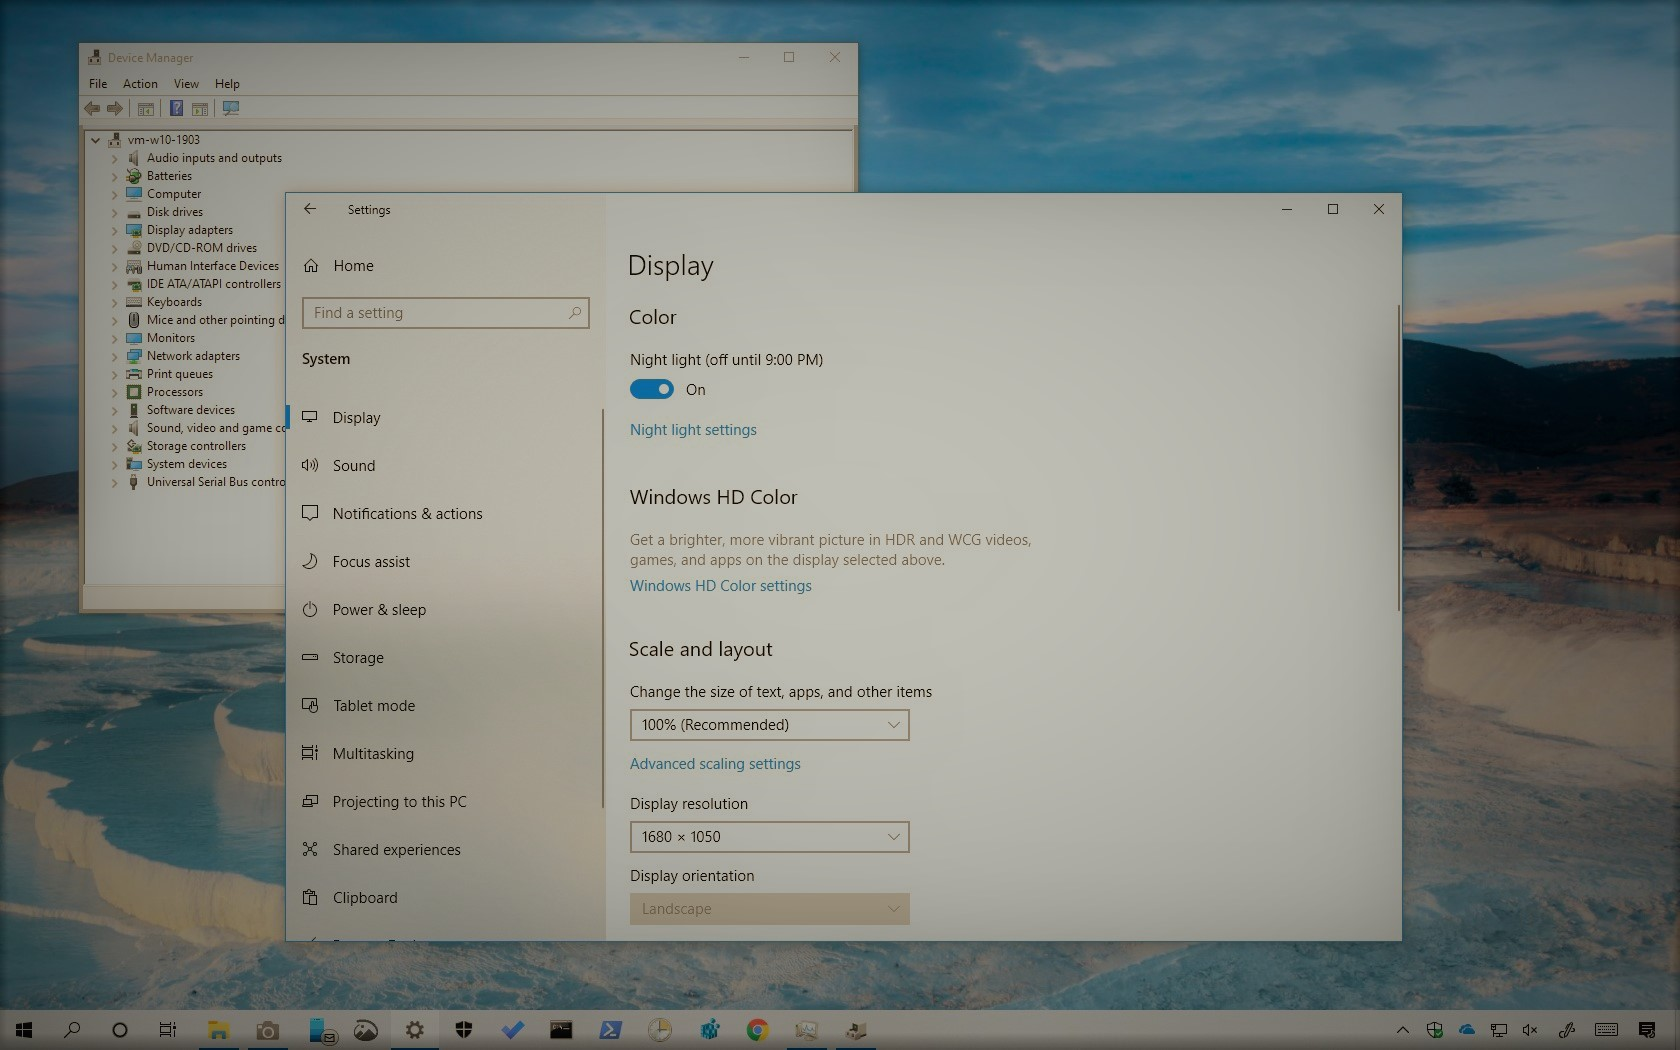 How to fix 'Night light' on Windows 10 • Pureinfotech